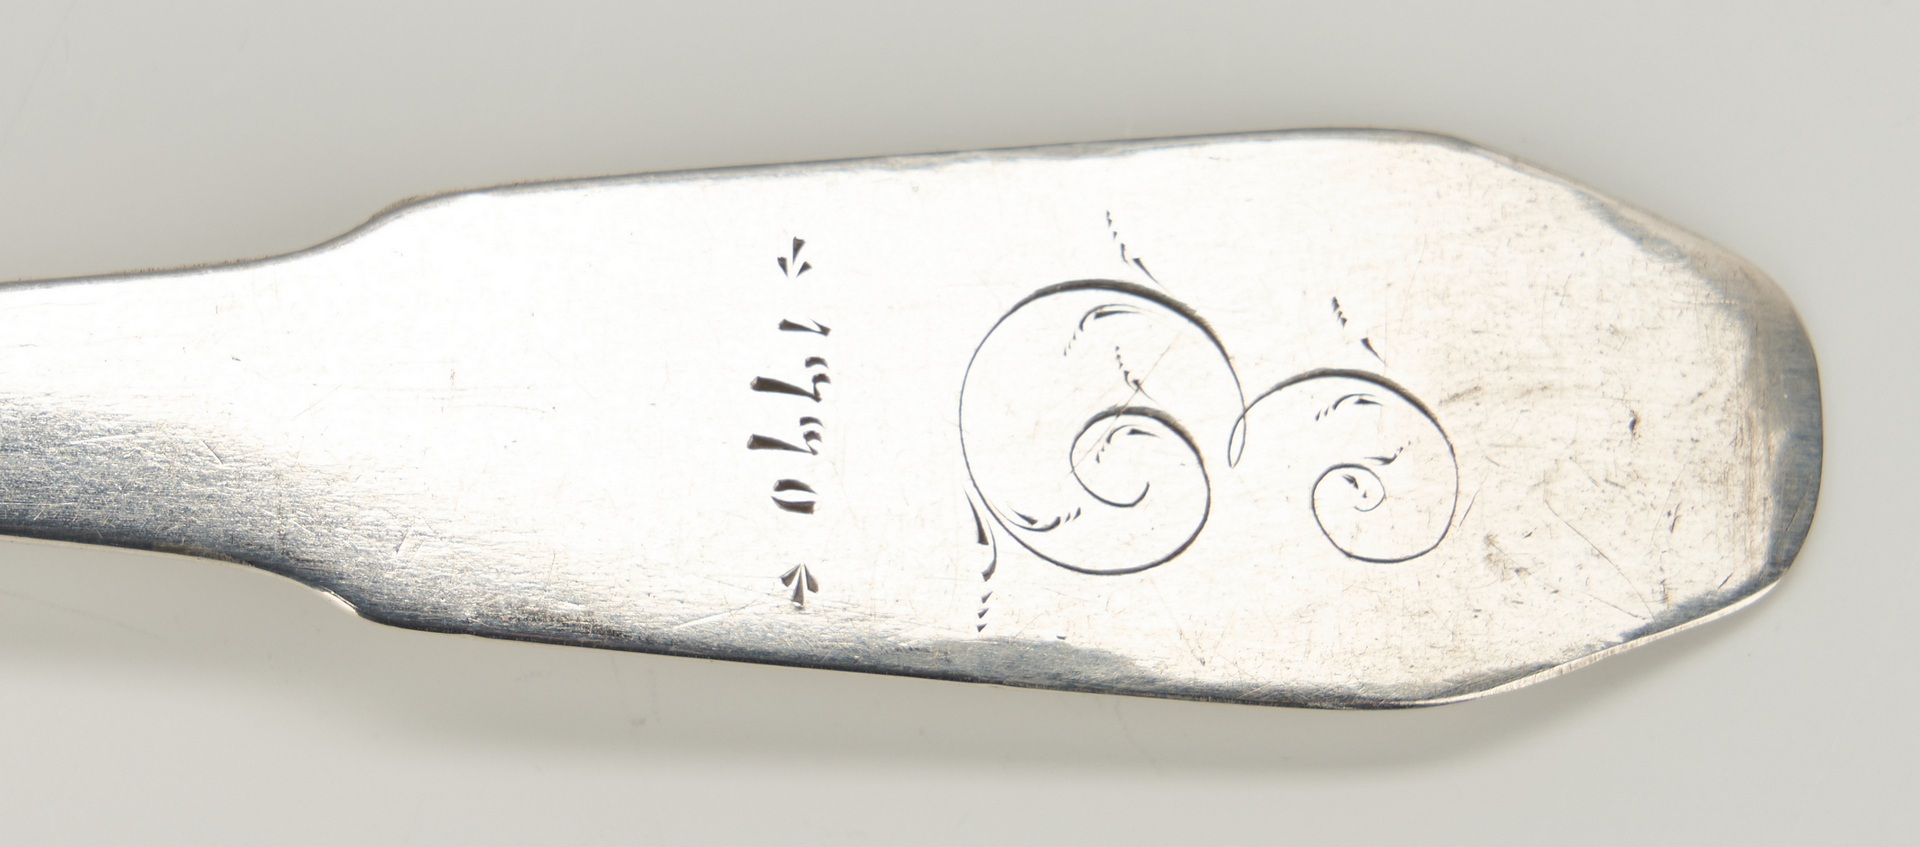 Lot 75: 2 Coin Silver Spoons inc. KY, Edward West and Thomas Phillips